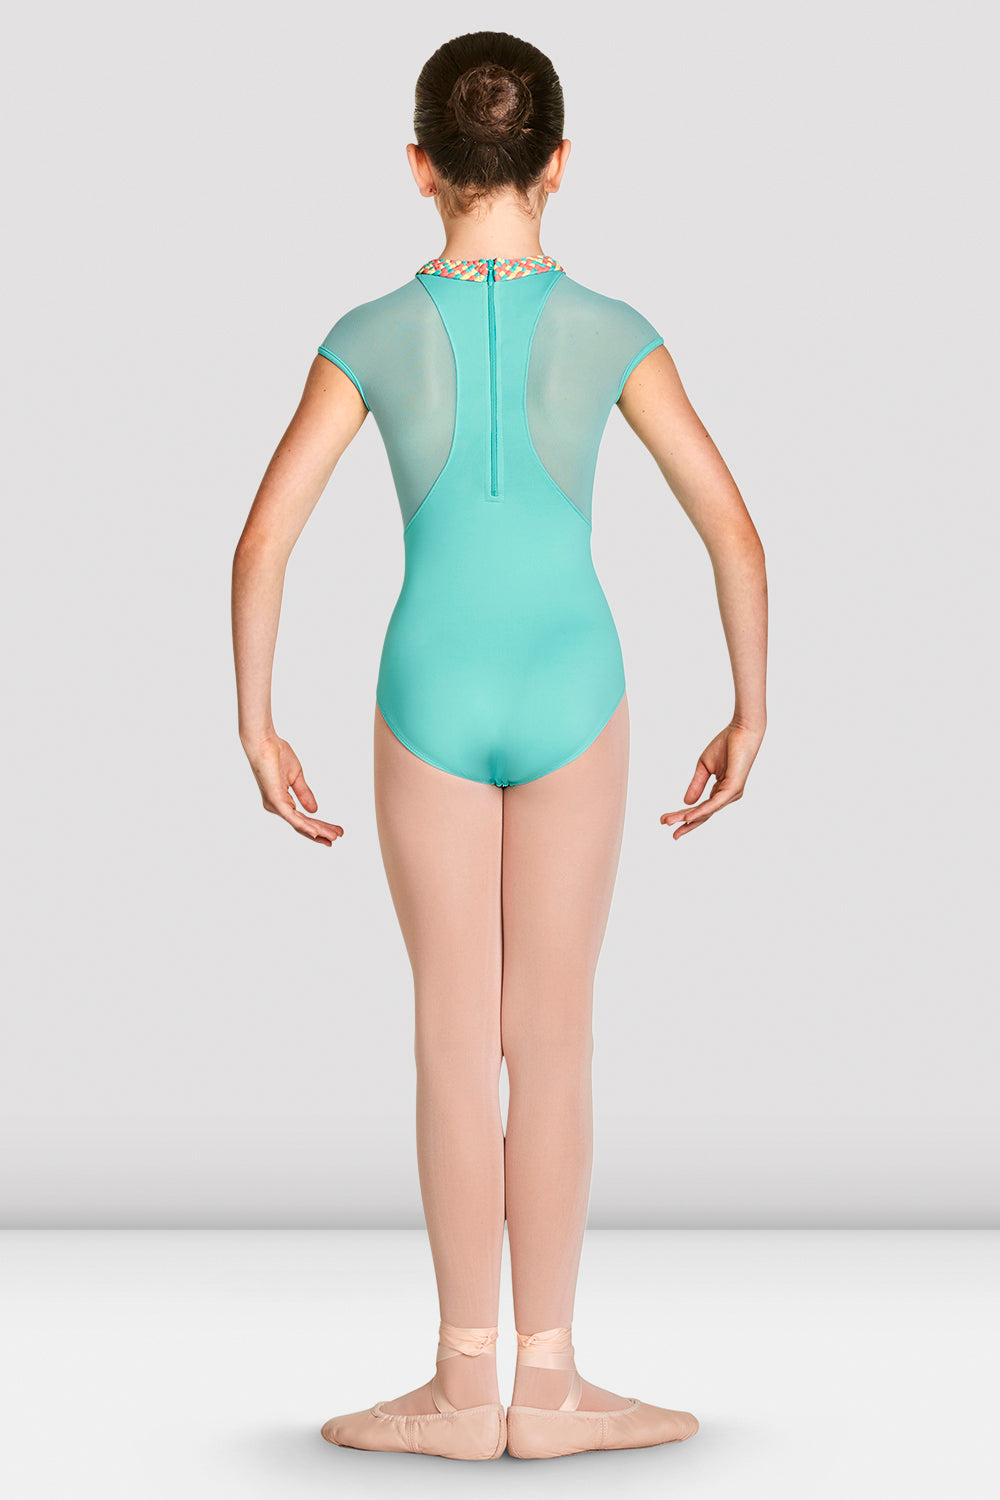 Blue Radiance Bloch Girls Alisha High Neckline Zip Back Cap Sleeve Leotard on female model feet in first position with arms in demi bras facing back